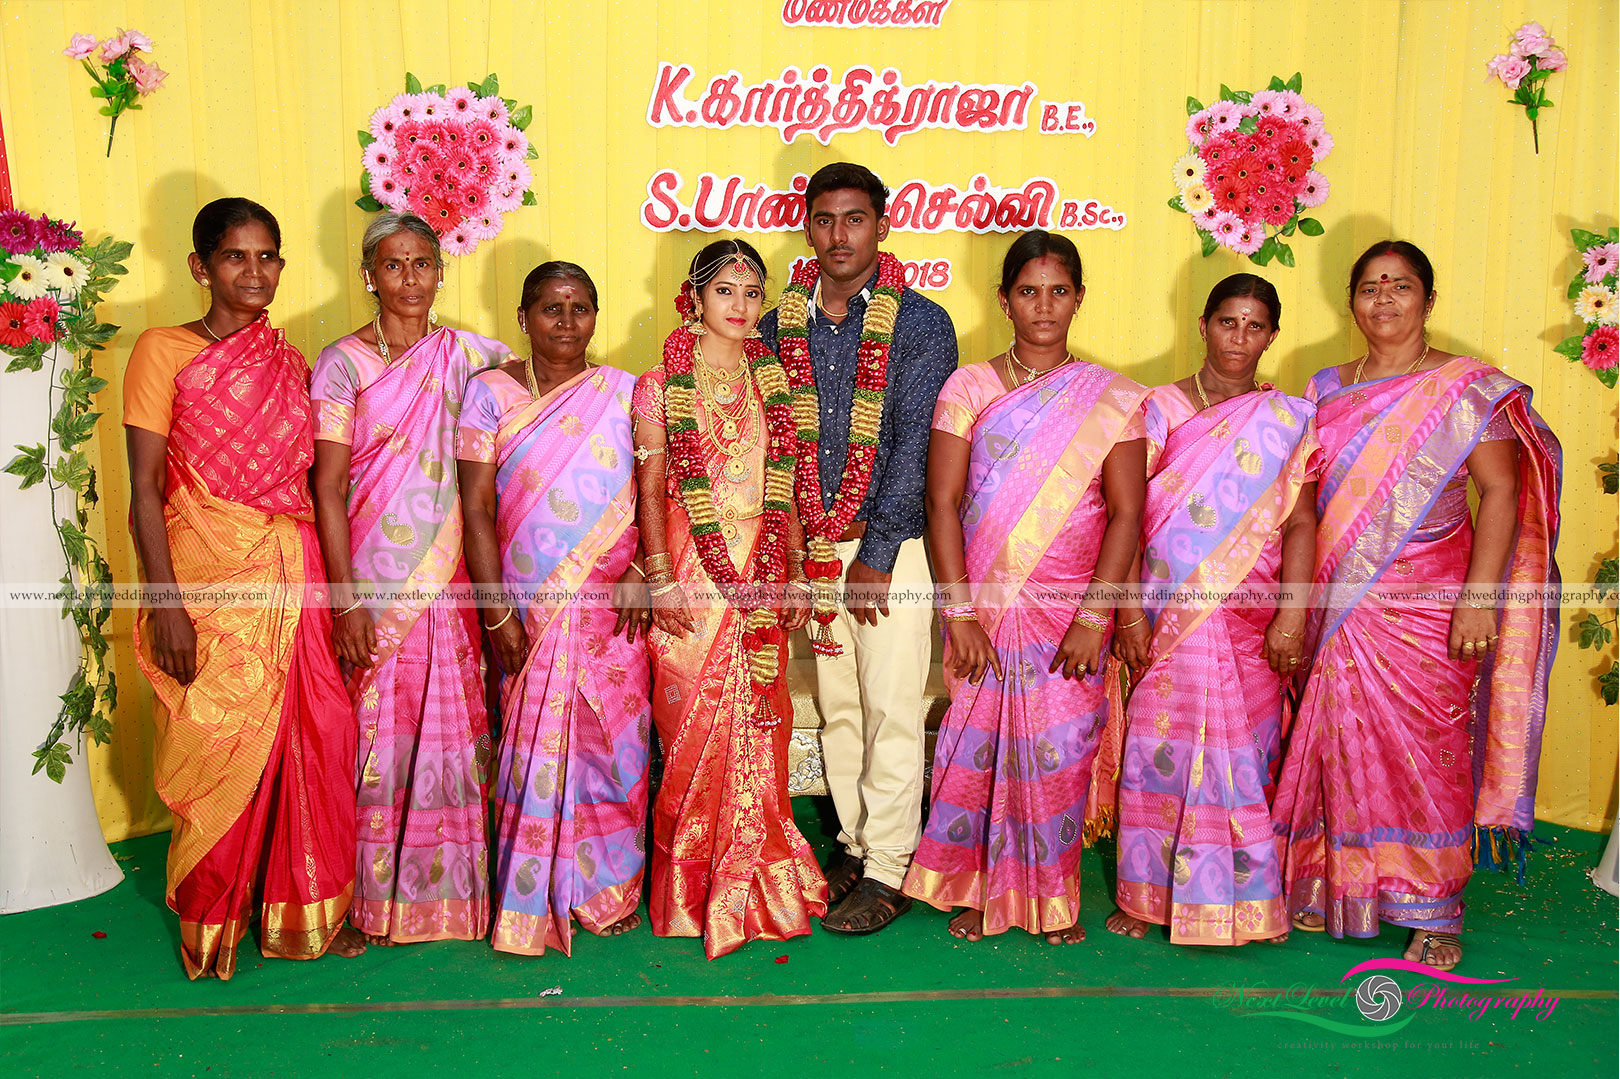 professional-candid-wedding-photography-in-Madurai-6